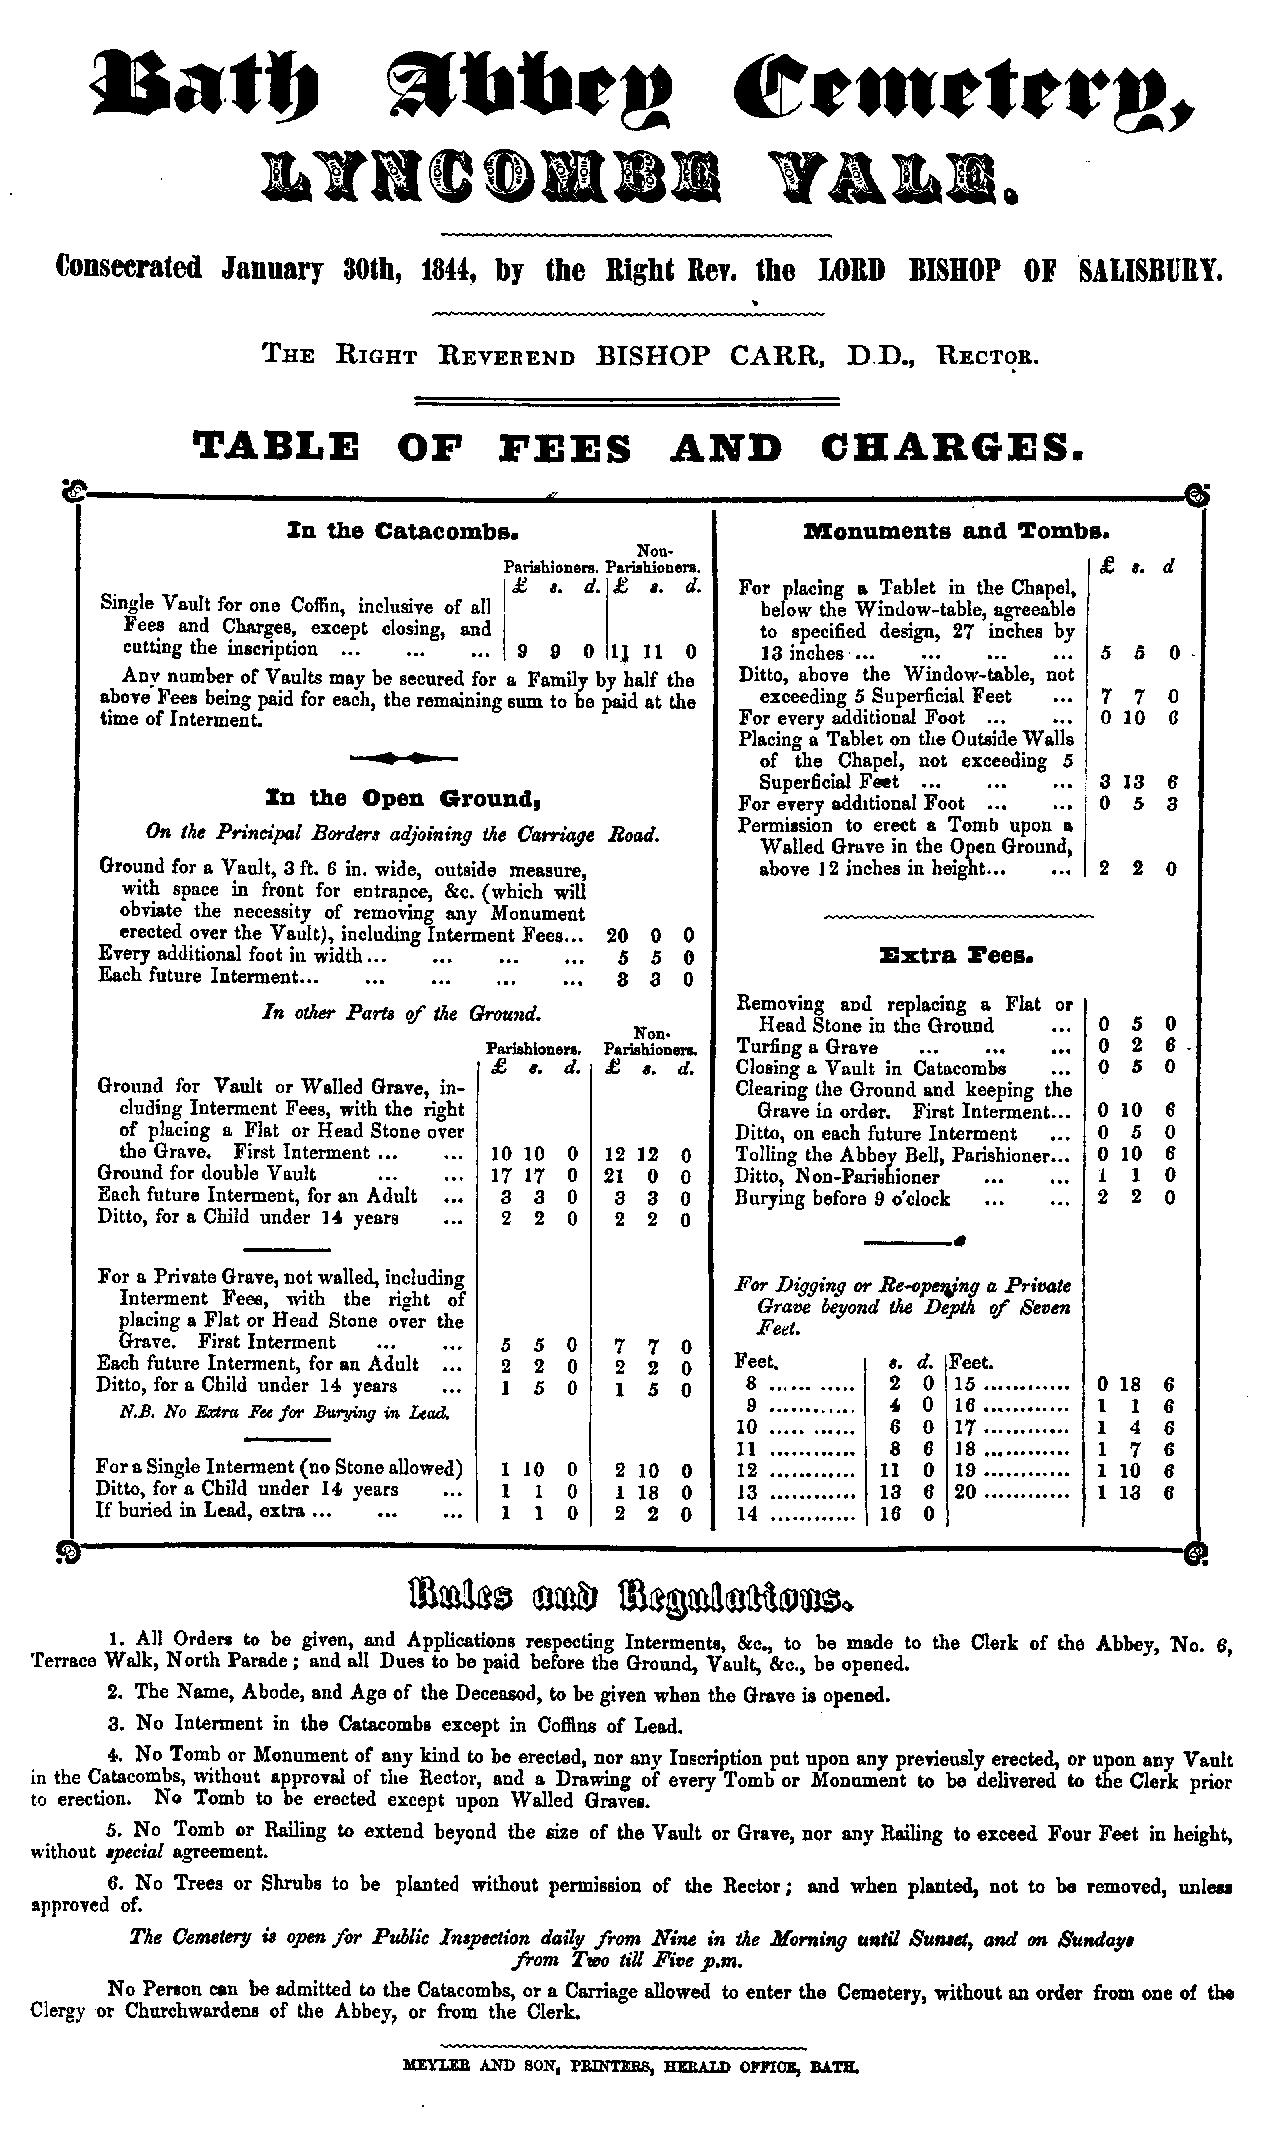 Price list from the time that Thomas Carr was Rector (1855 - 1859).jpg